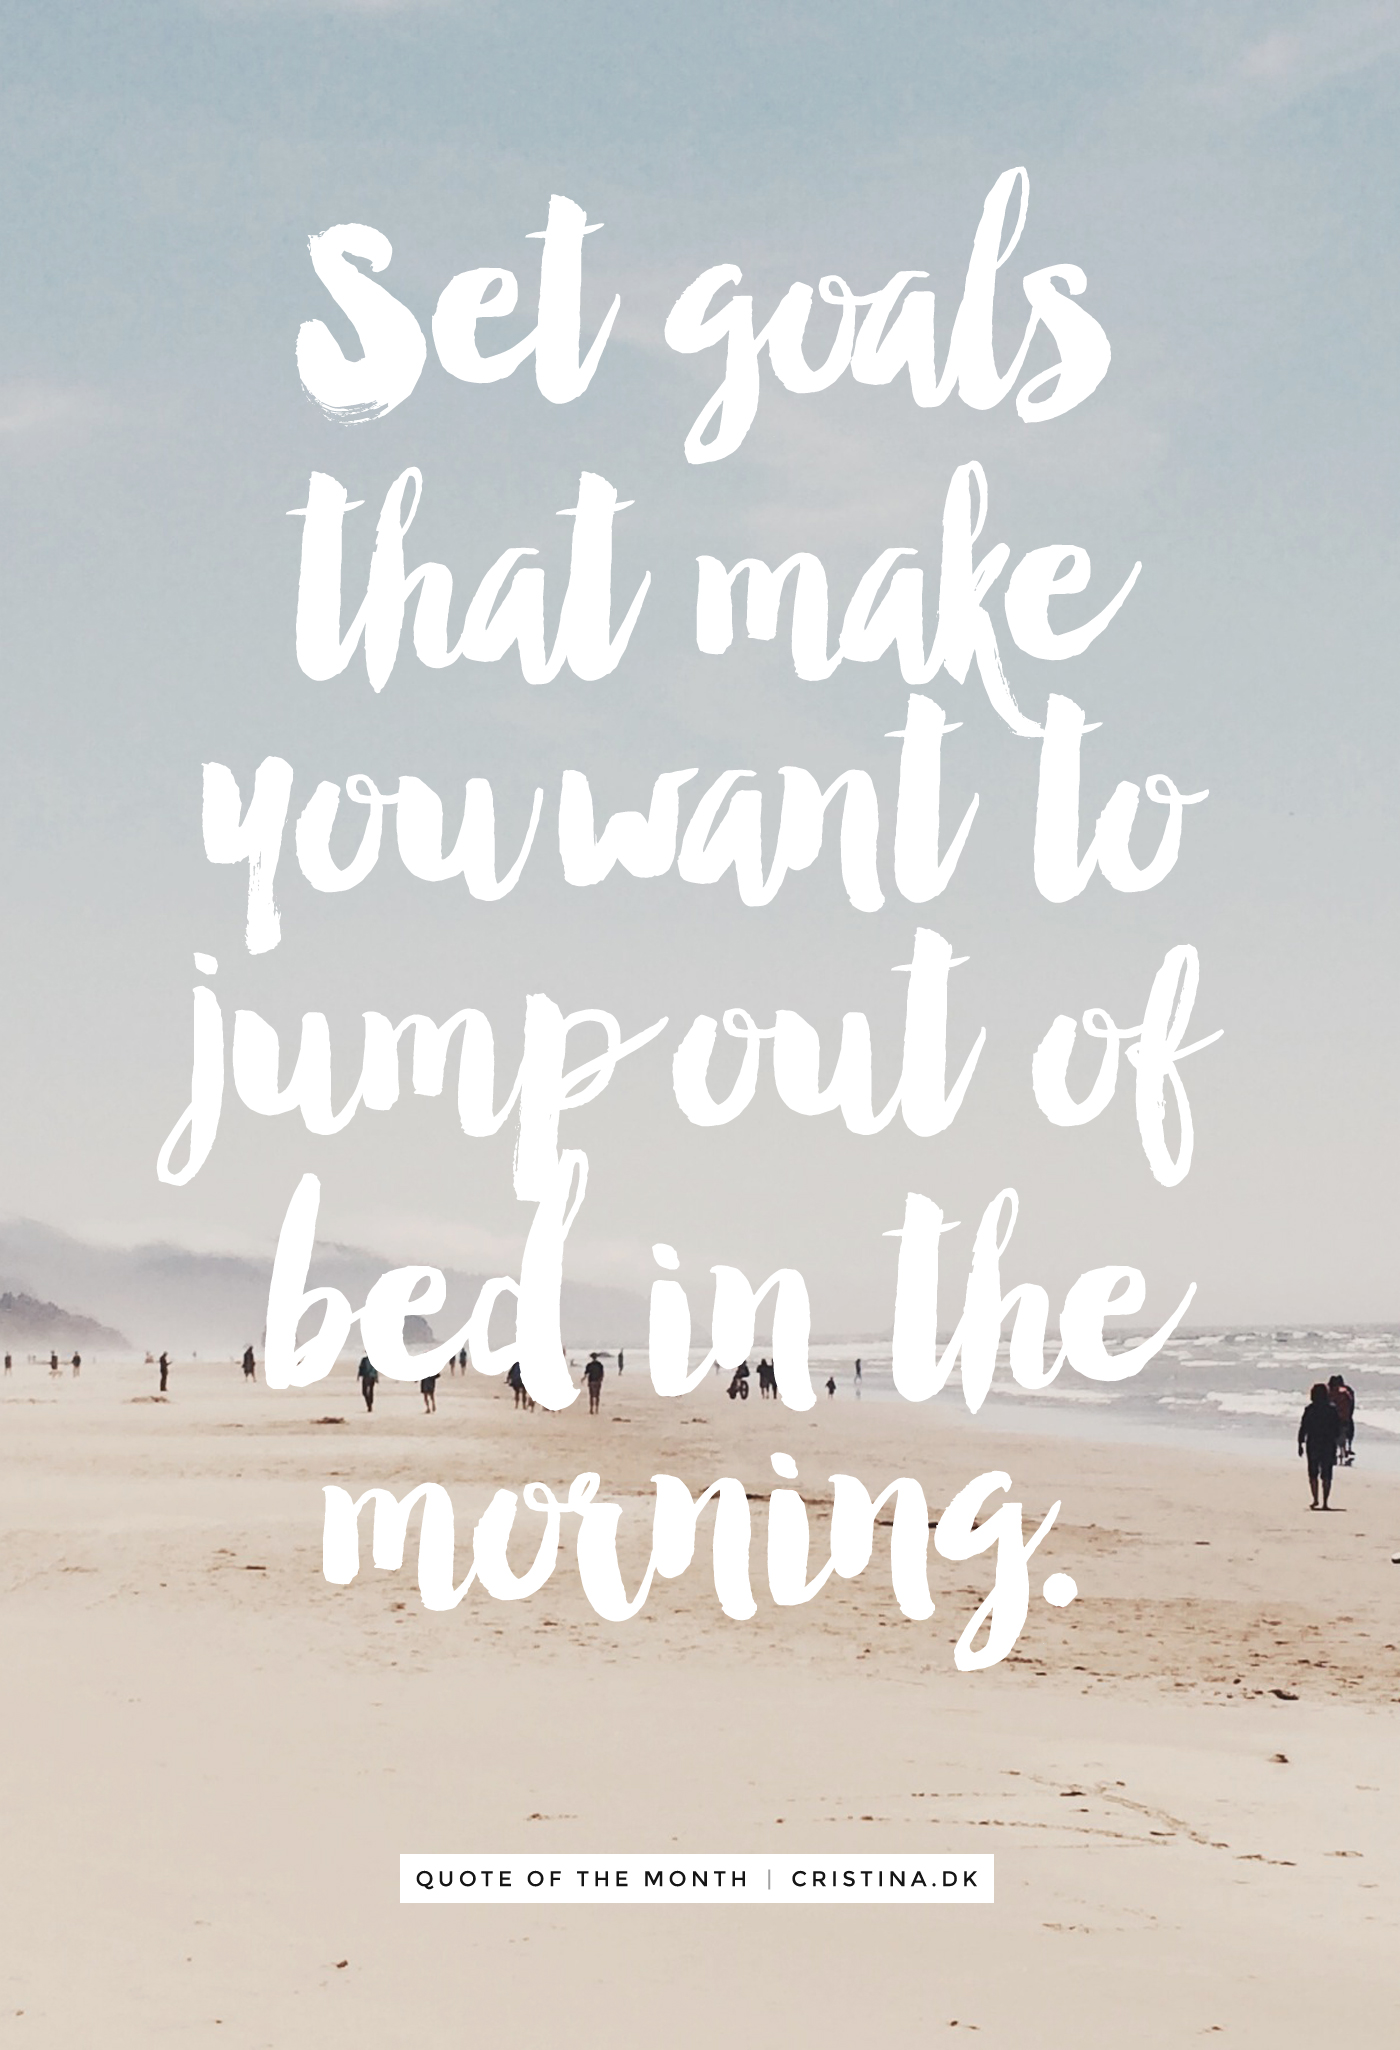 Quote of the month: Set goals that make you want to jump out of bed in the morning